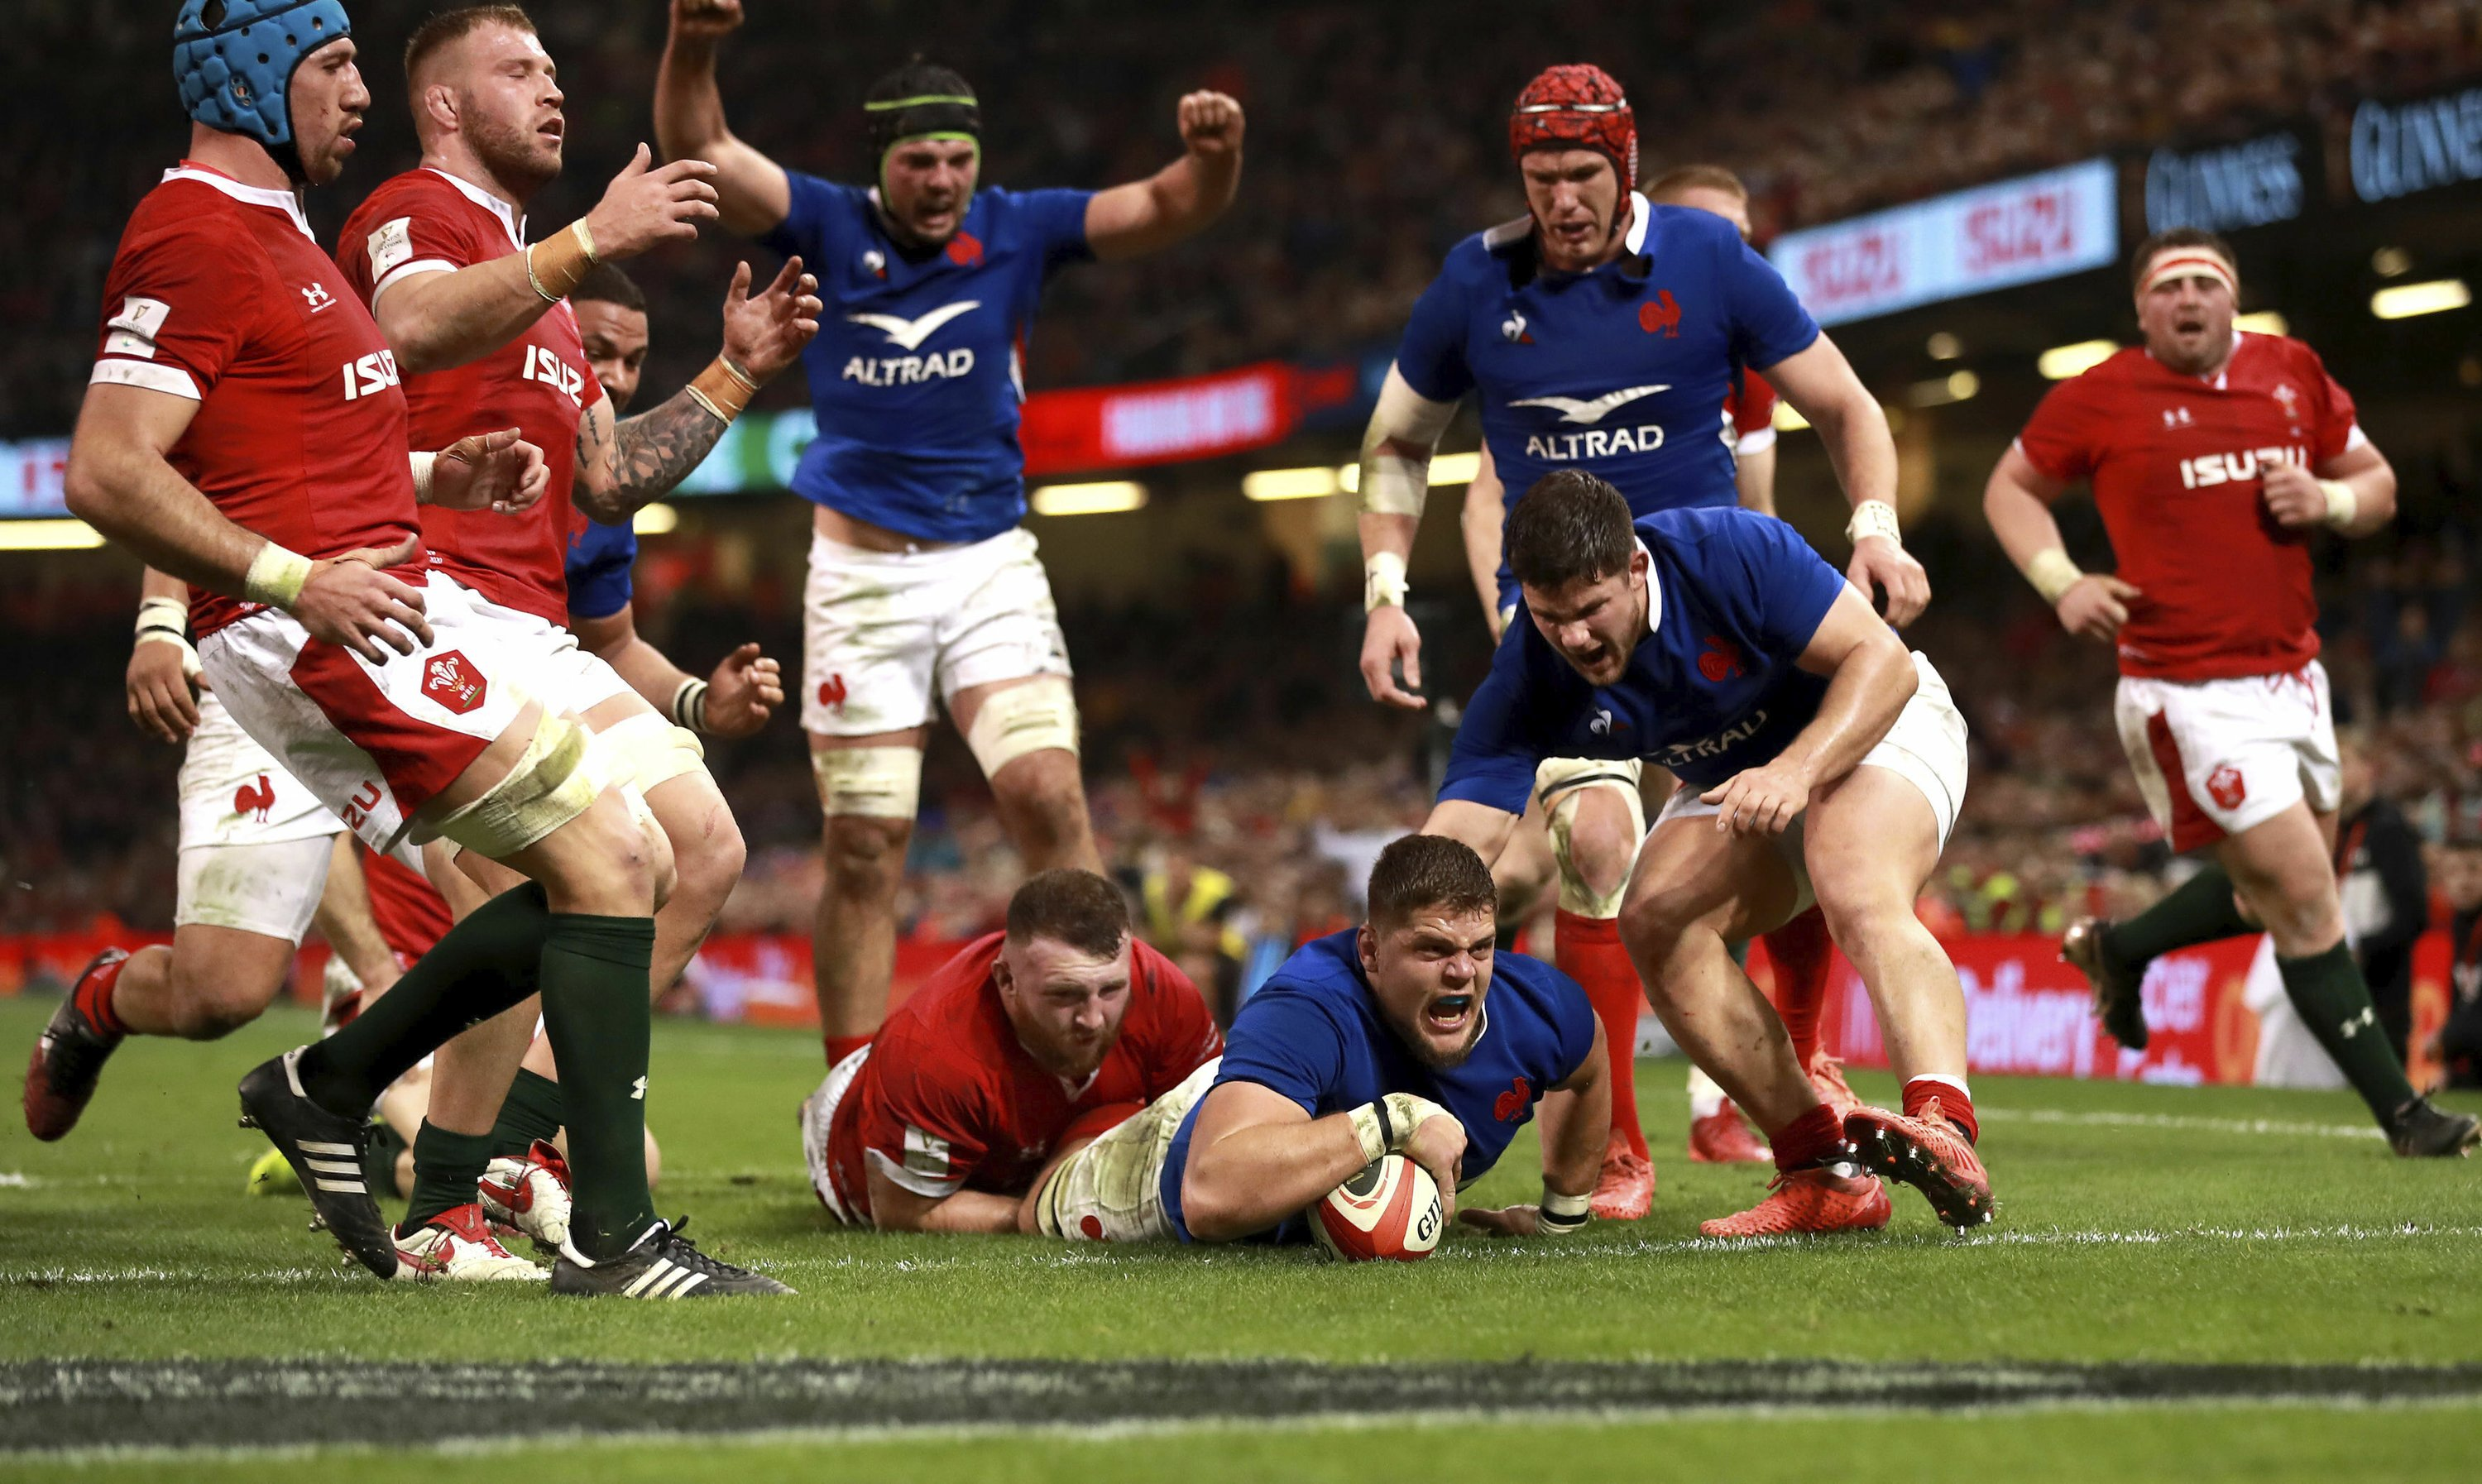 6N: Unbeaten France ends Wales title defense in thriller